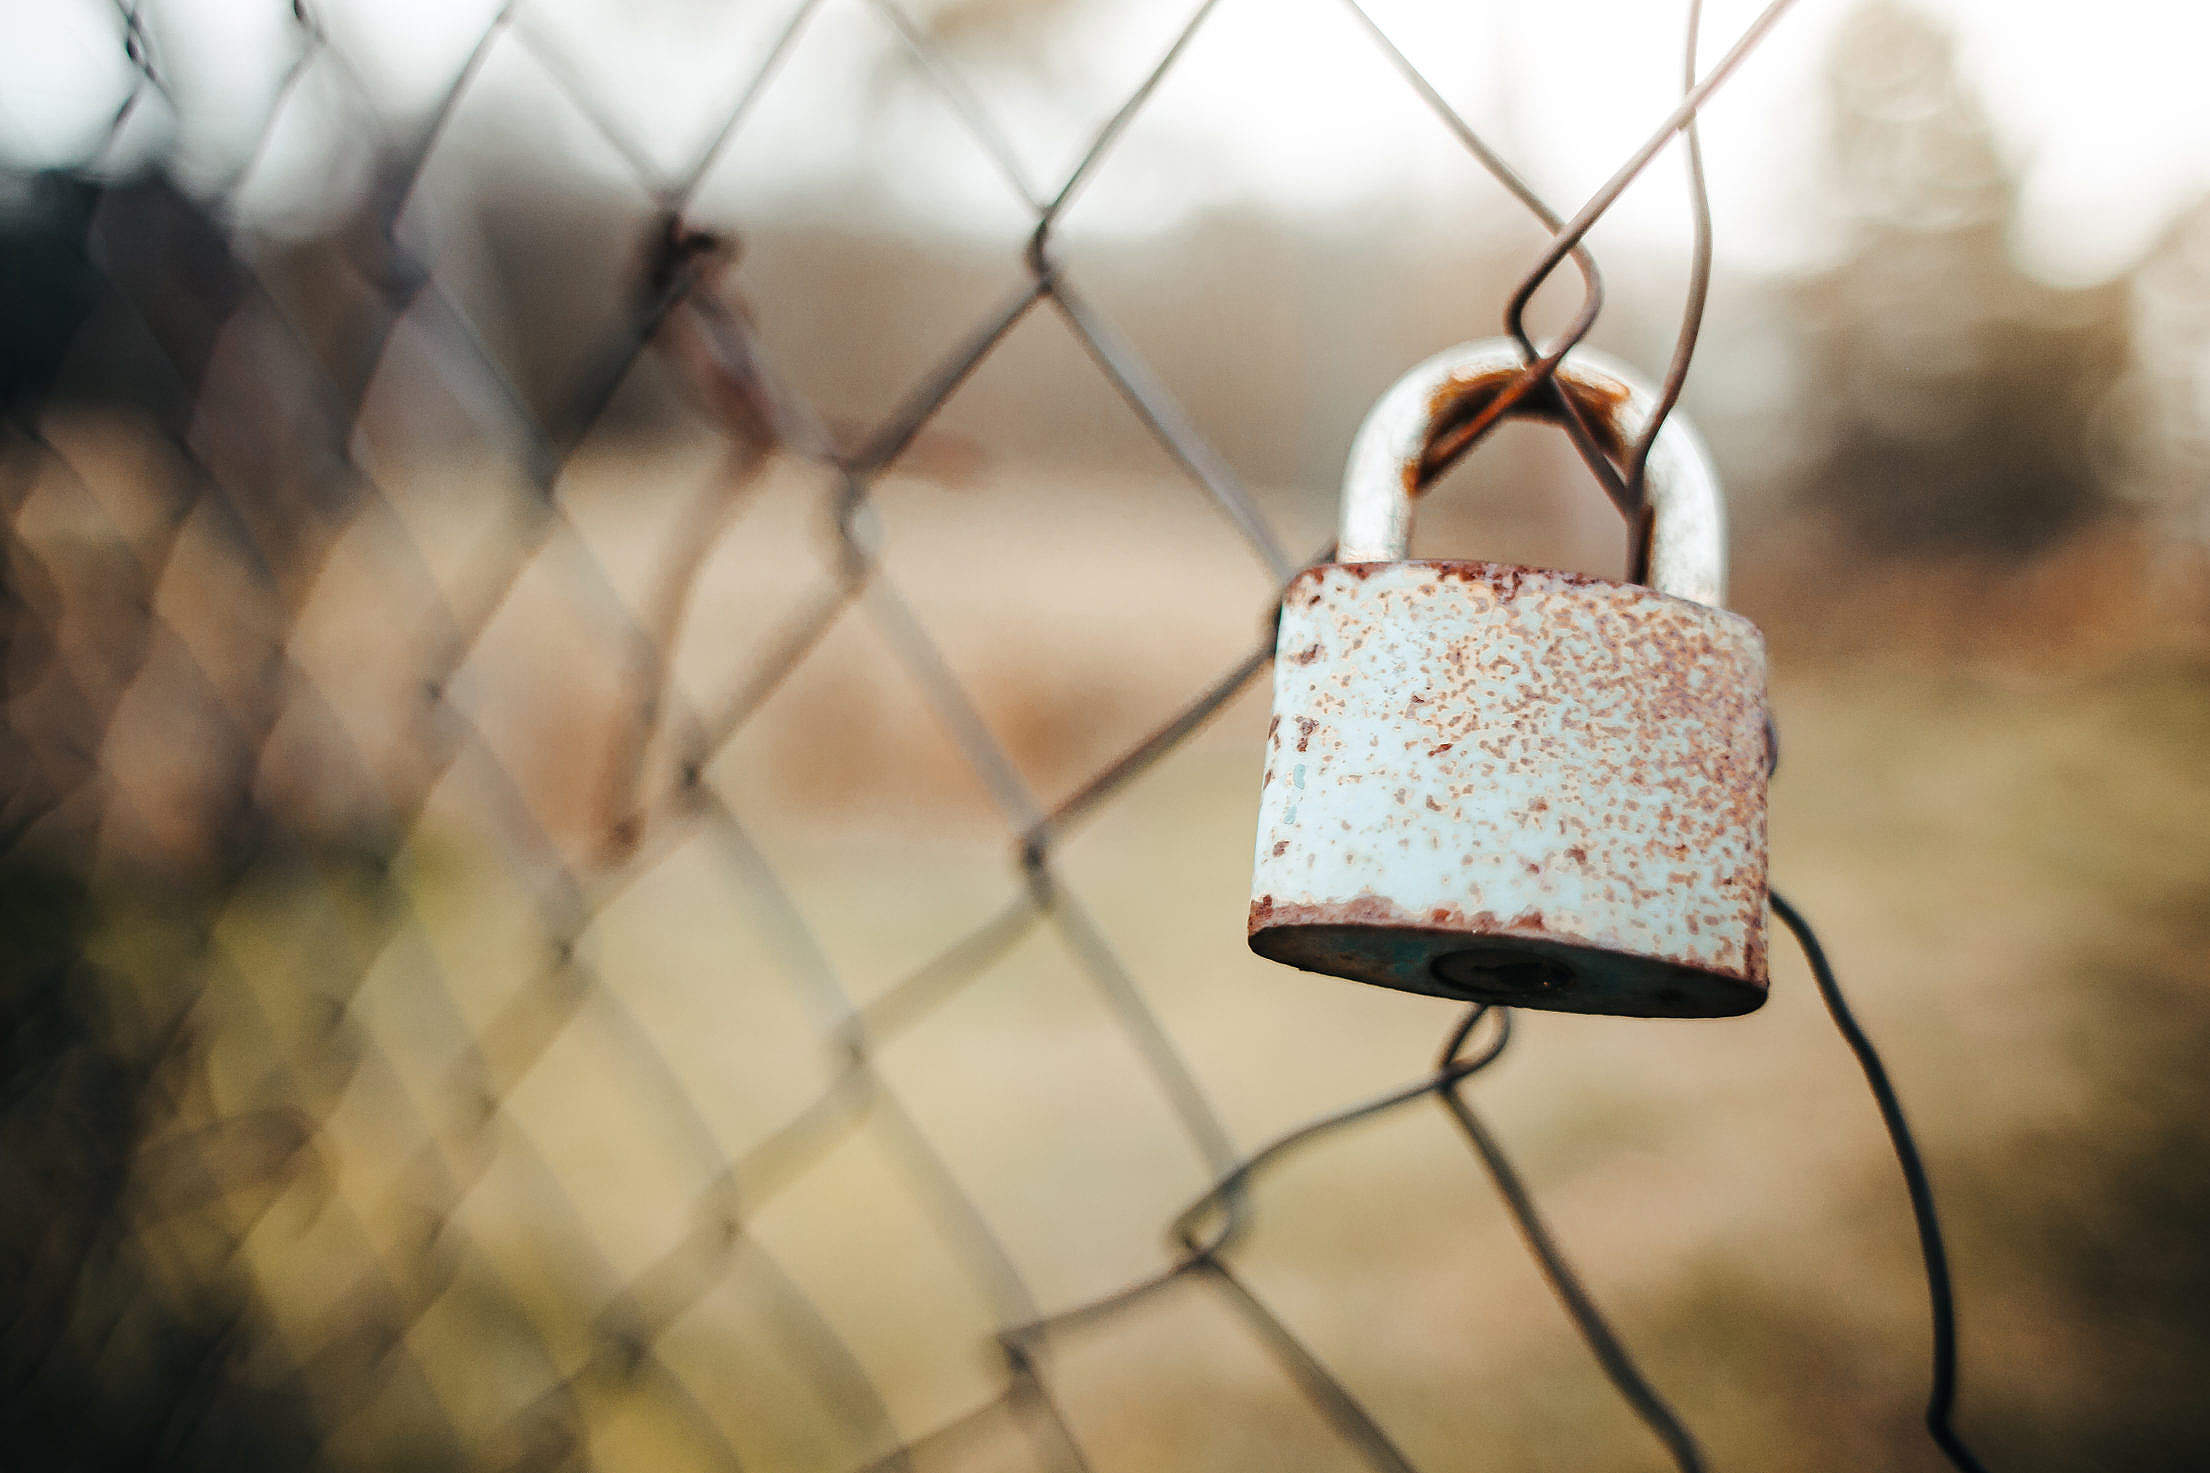 Old Lock on the Fence Free Stock Photo